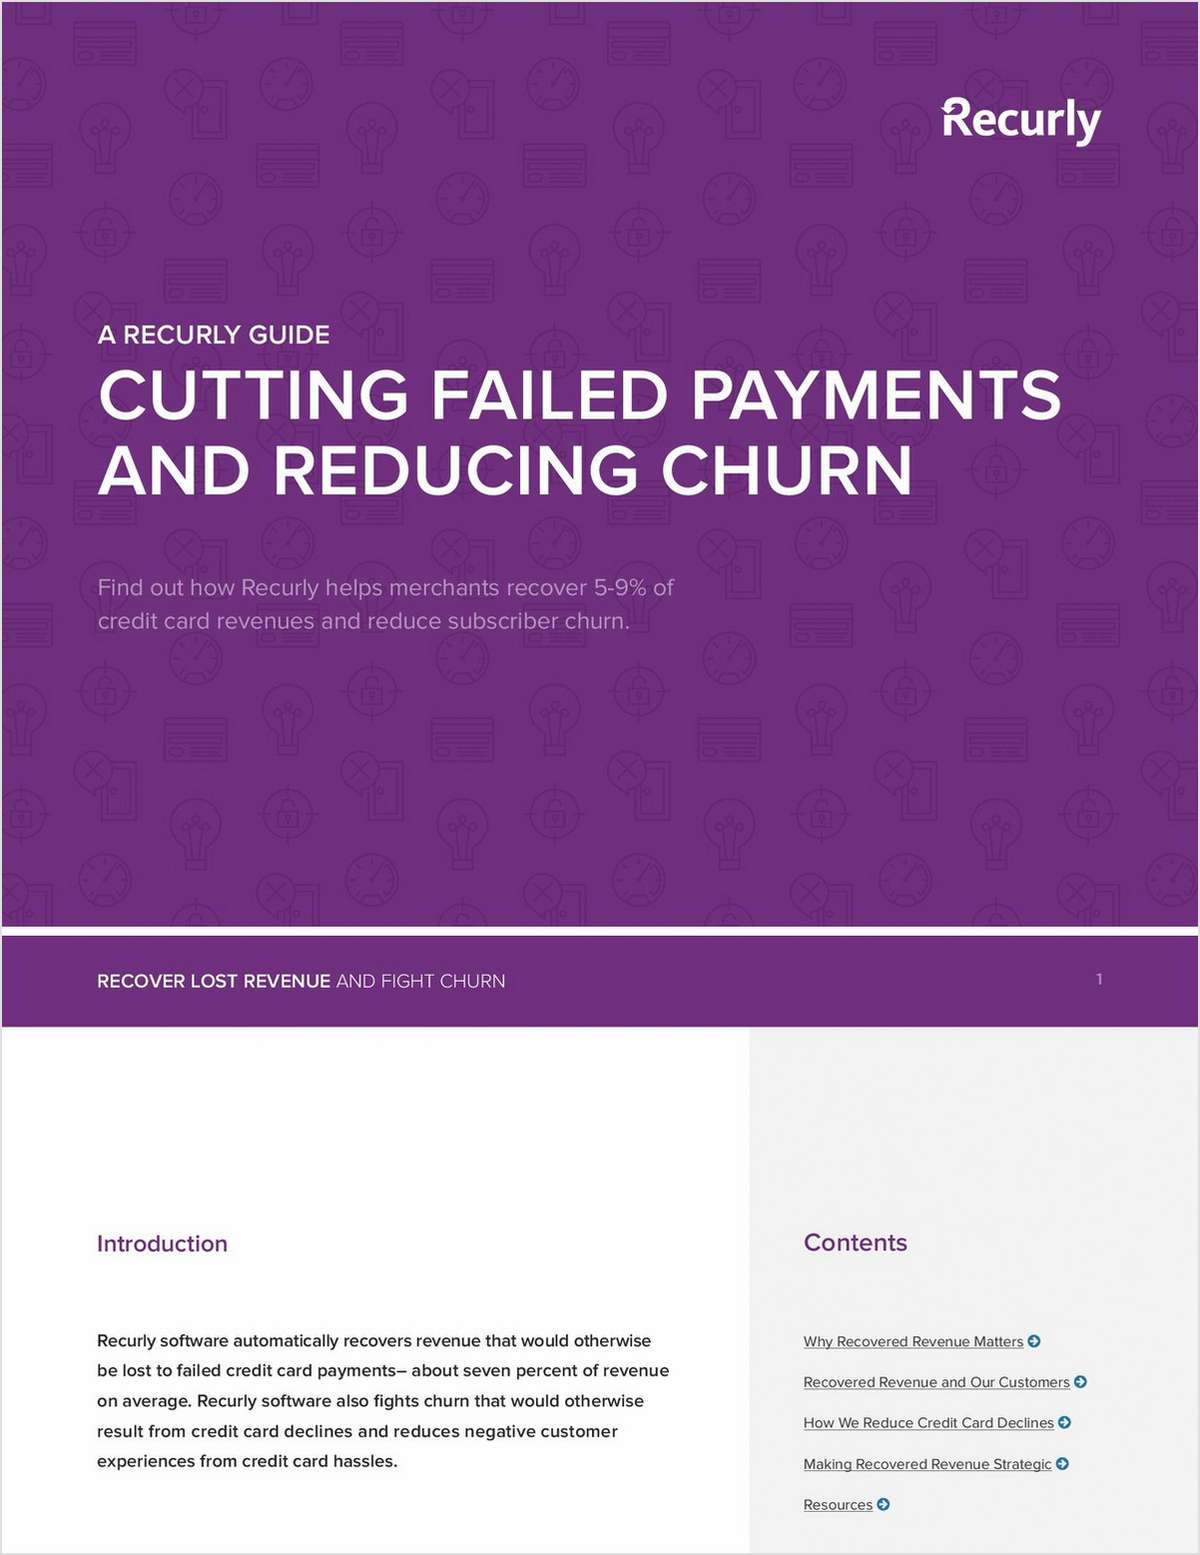 A Recurly Guide to Cutting Failed Payments and Reducing Churn